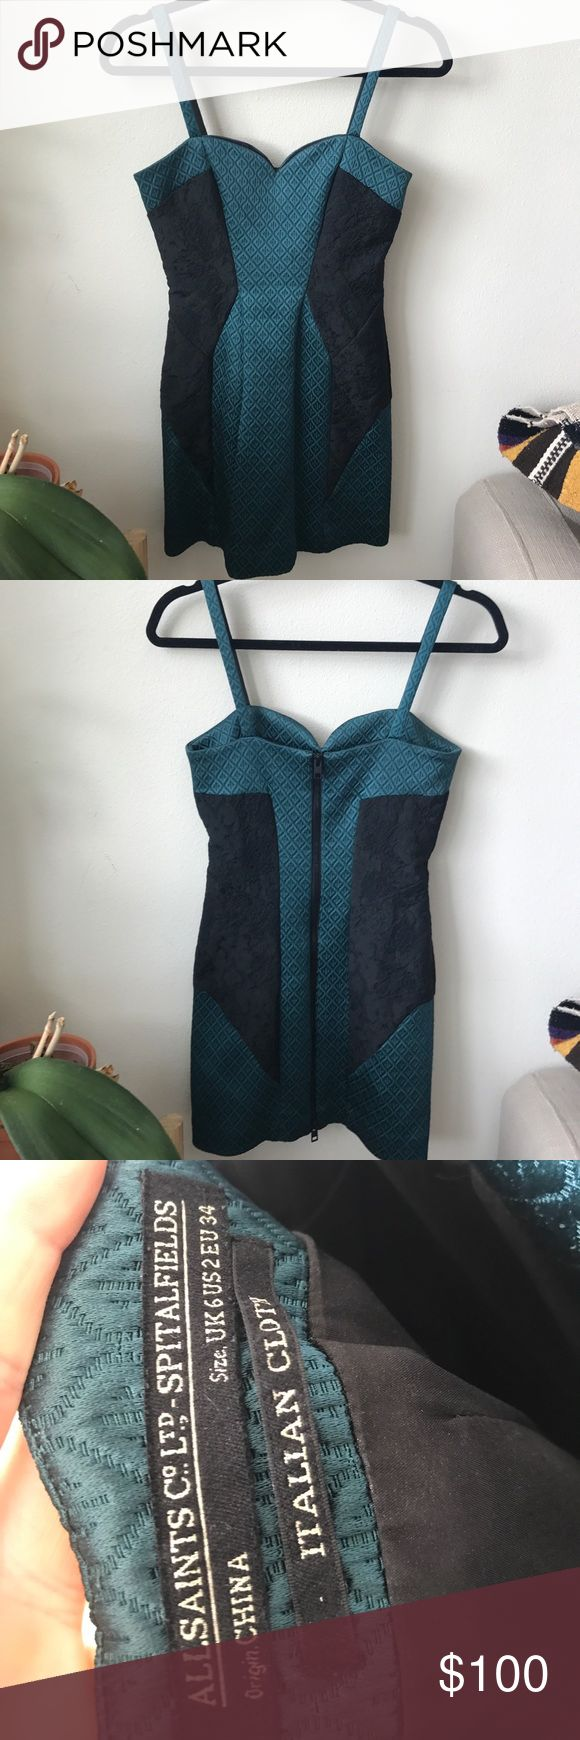 All Saints mini dress zipper back in size 2 Gorgeous Allsaints dress in emerald green and black. Quality, thick fabric. Zipper back. Sexy and sophisticated. Runs small. All Saints Dresses Mini